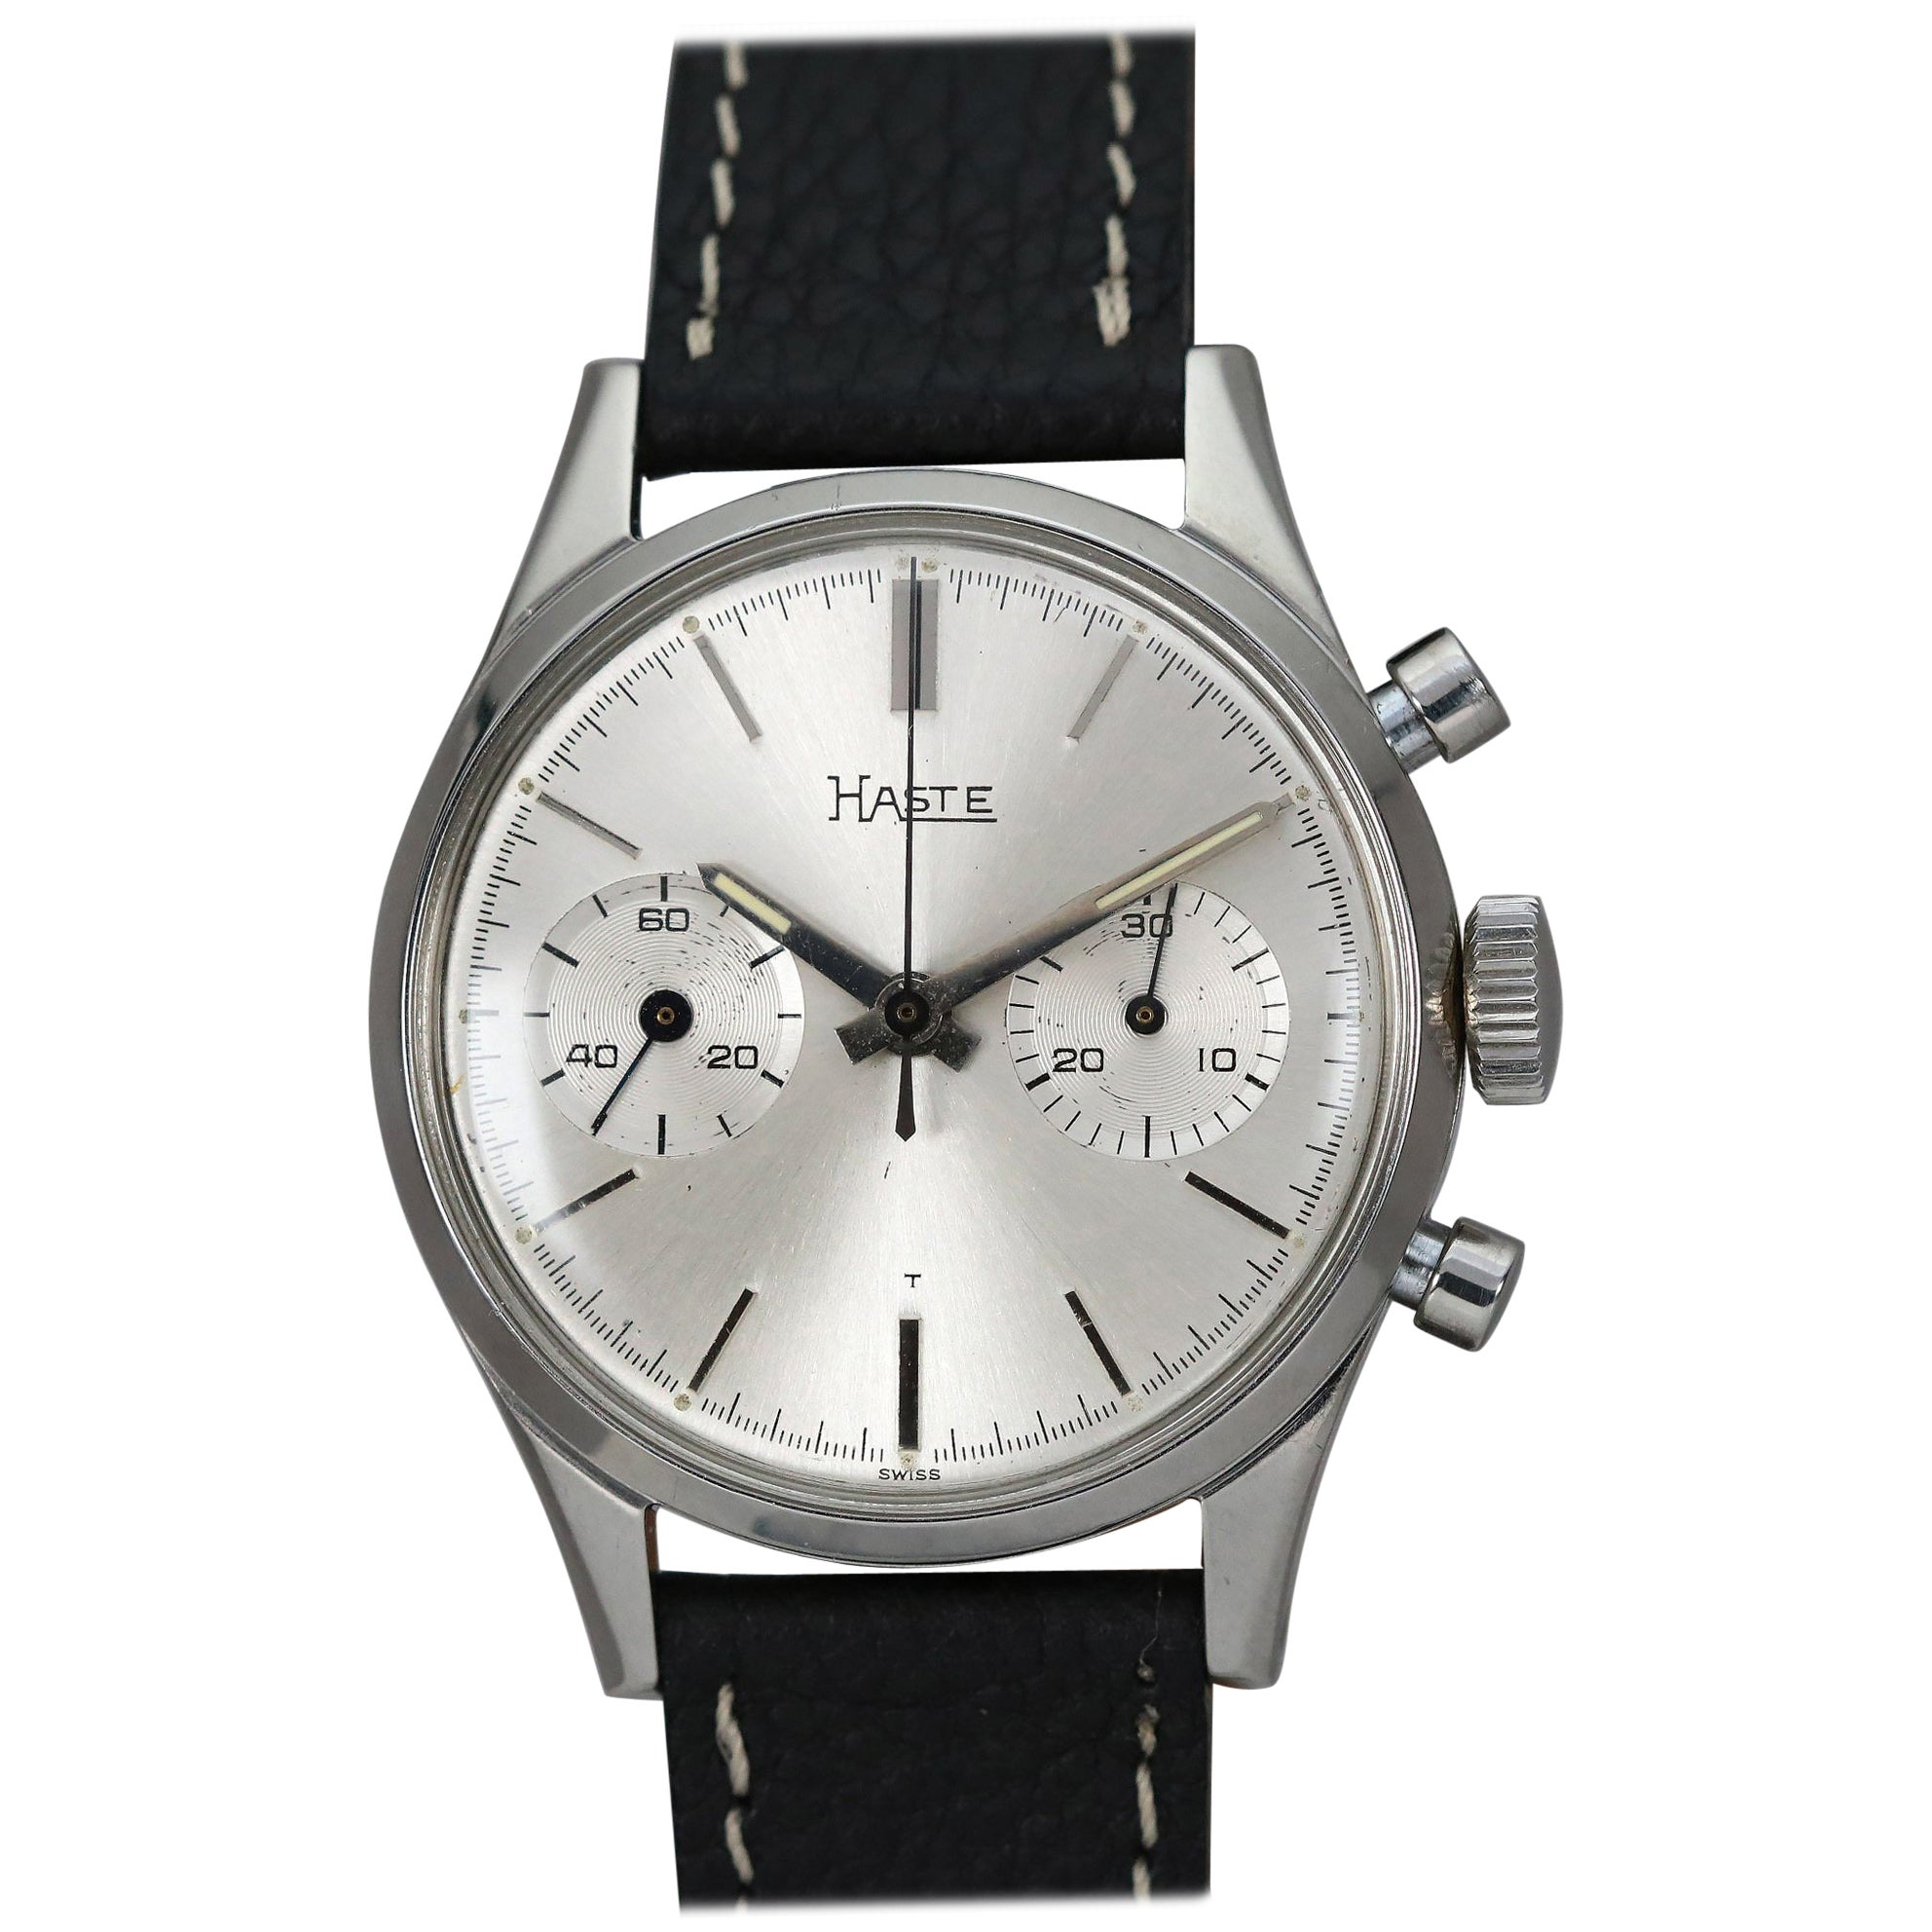 Haste Stainless Steel Chronograph Manual Wristwatch, circa 1960s